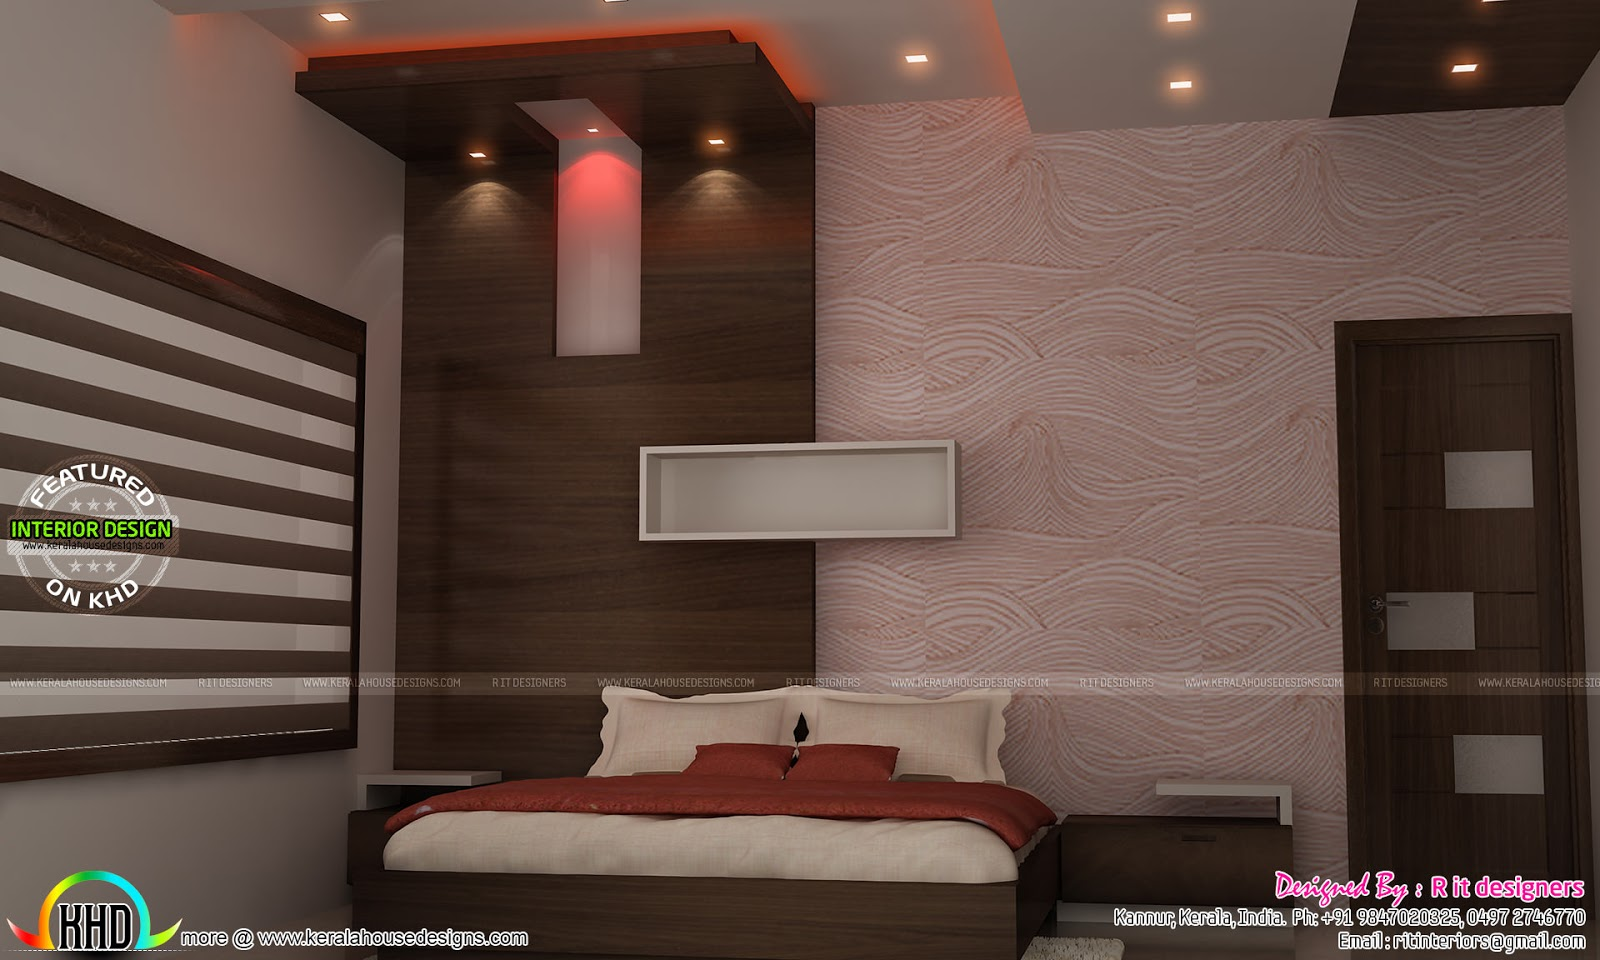 Tv unit furniture dining and bedroom interiors kerala for Interior wallpaper designs india